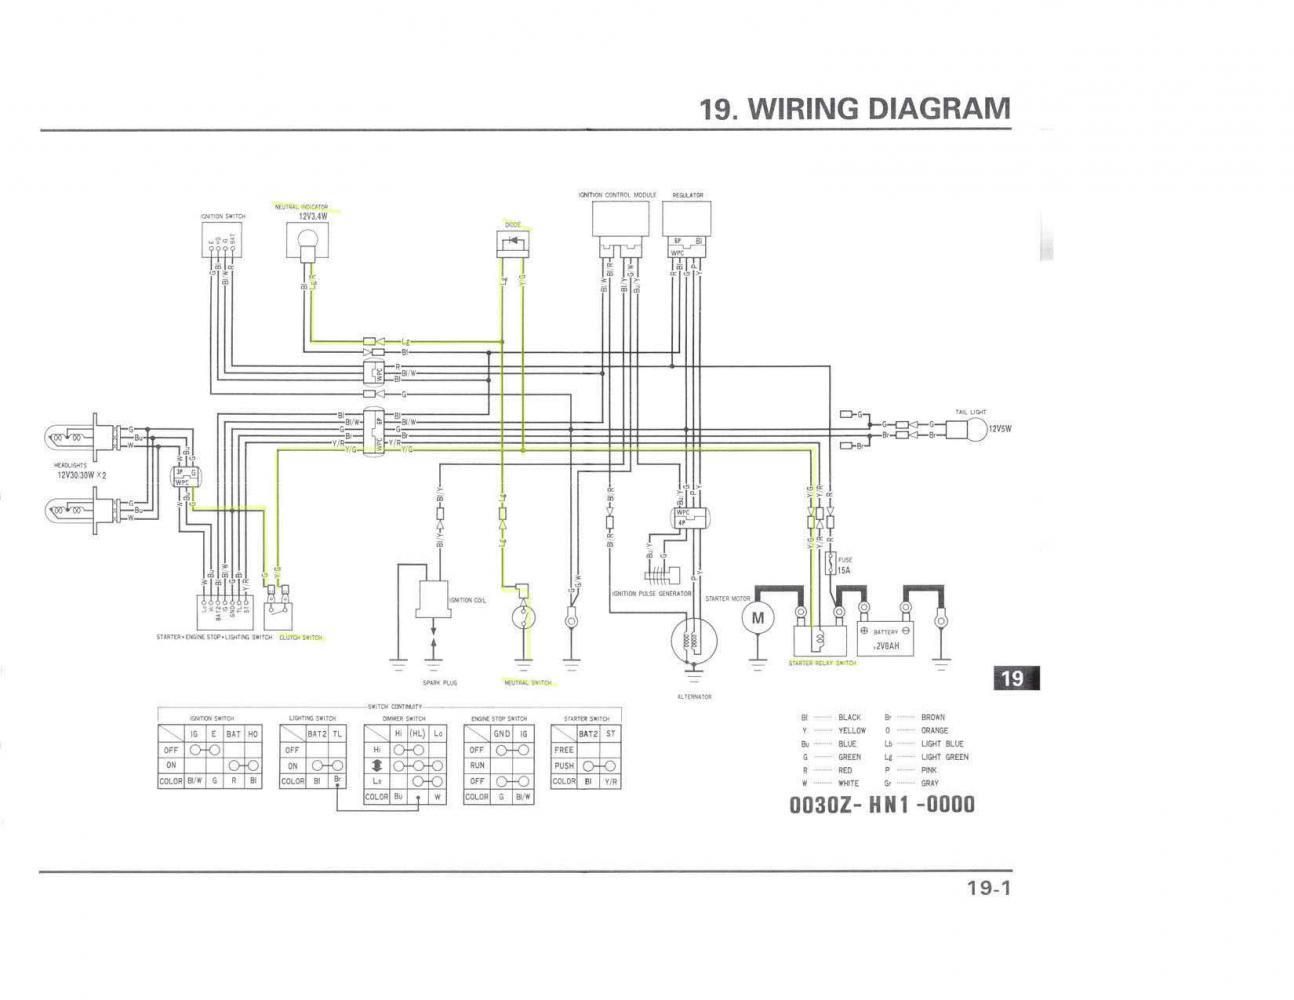 Diagram 1984 Honda Trx 250 Wiring Diagram Full Version Hd Quality Wiring Diagram Shun Yti Fr